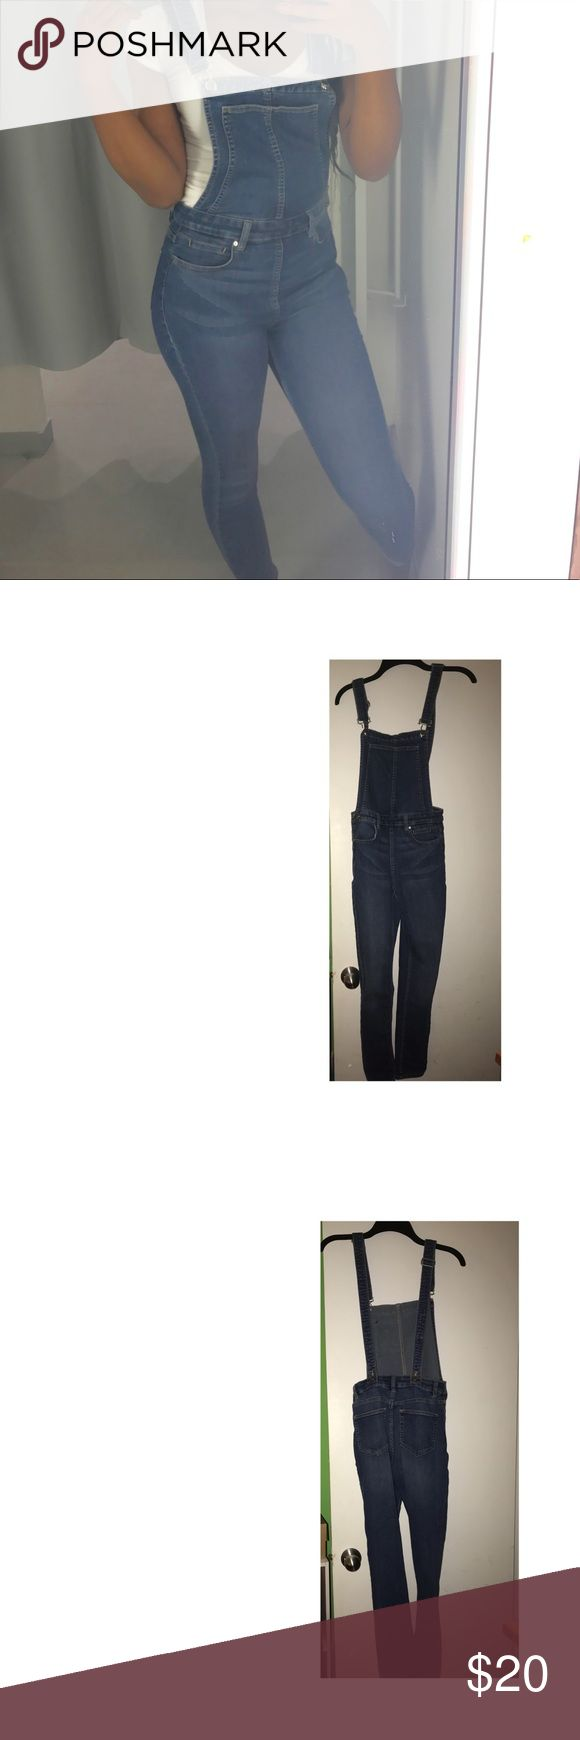 H&M Skinny Jean Overalls Worn once, great condition, feel free to ask questions H&M Jeans Overalls